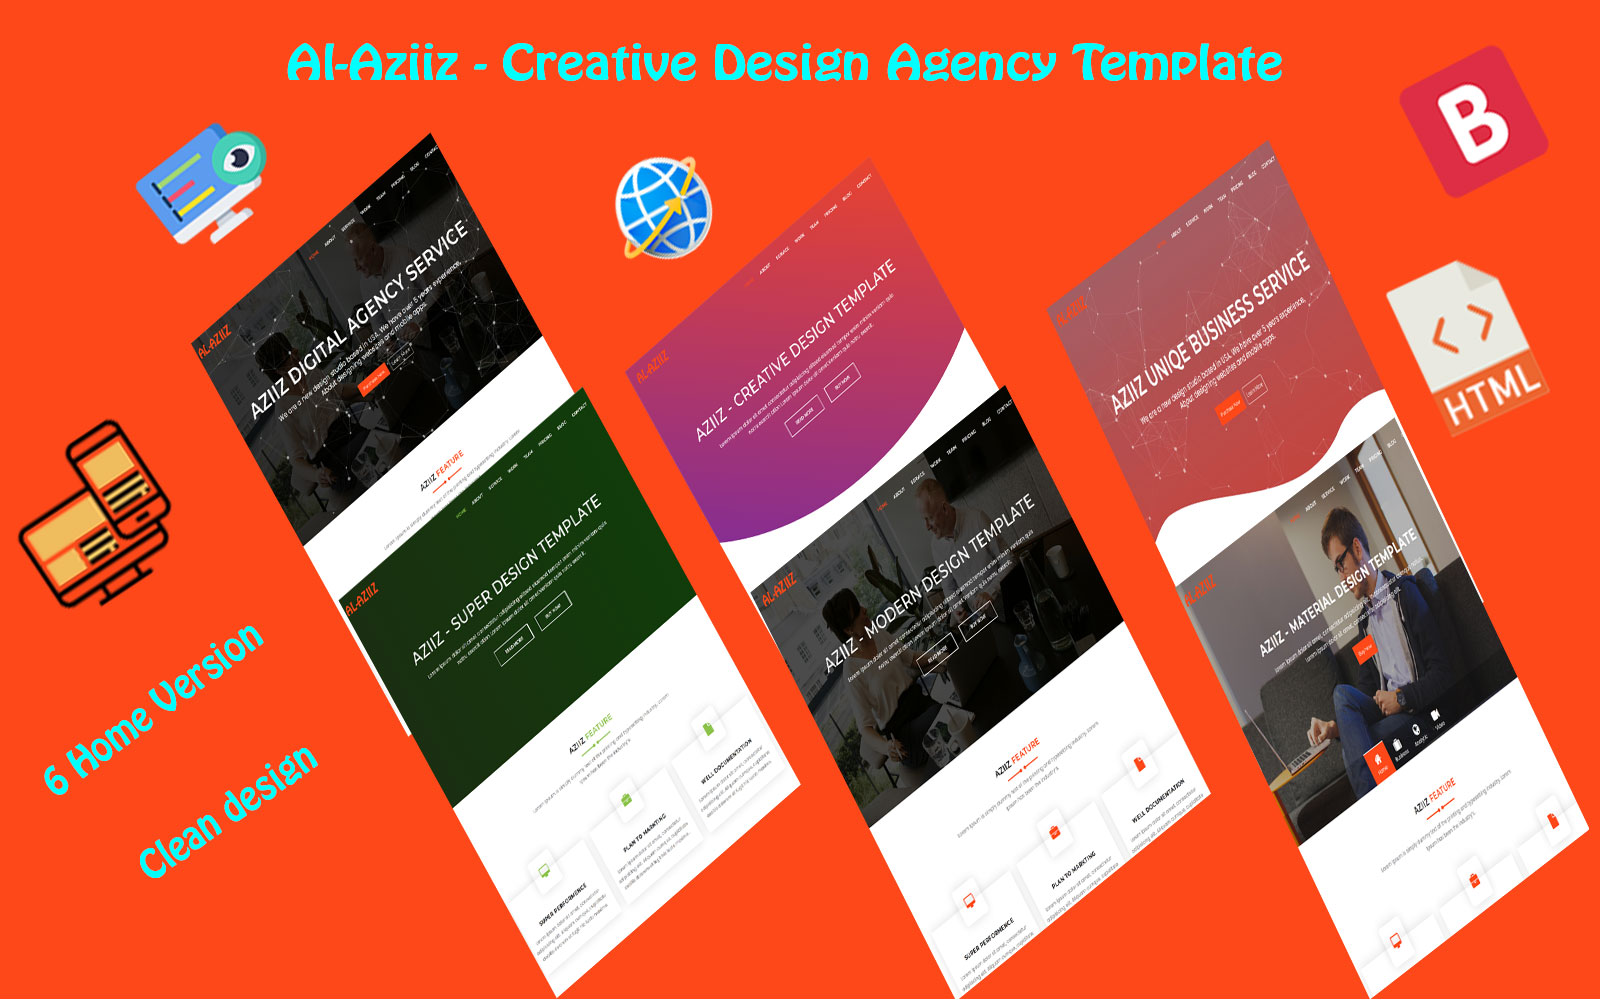 Al-Aziiz - Material Design Agency Landing Page Template